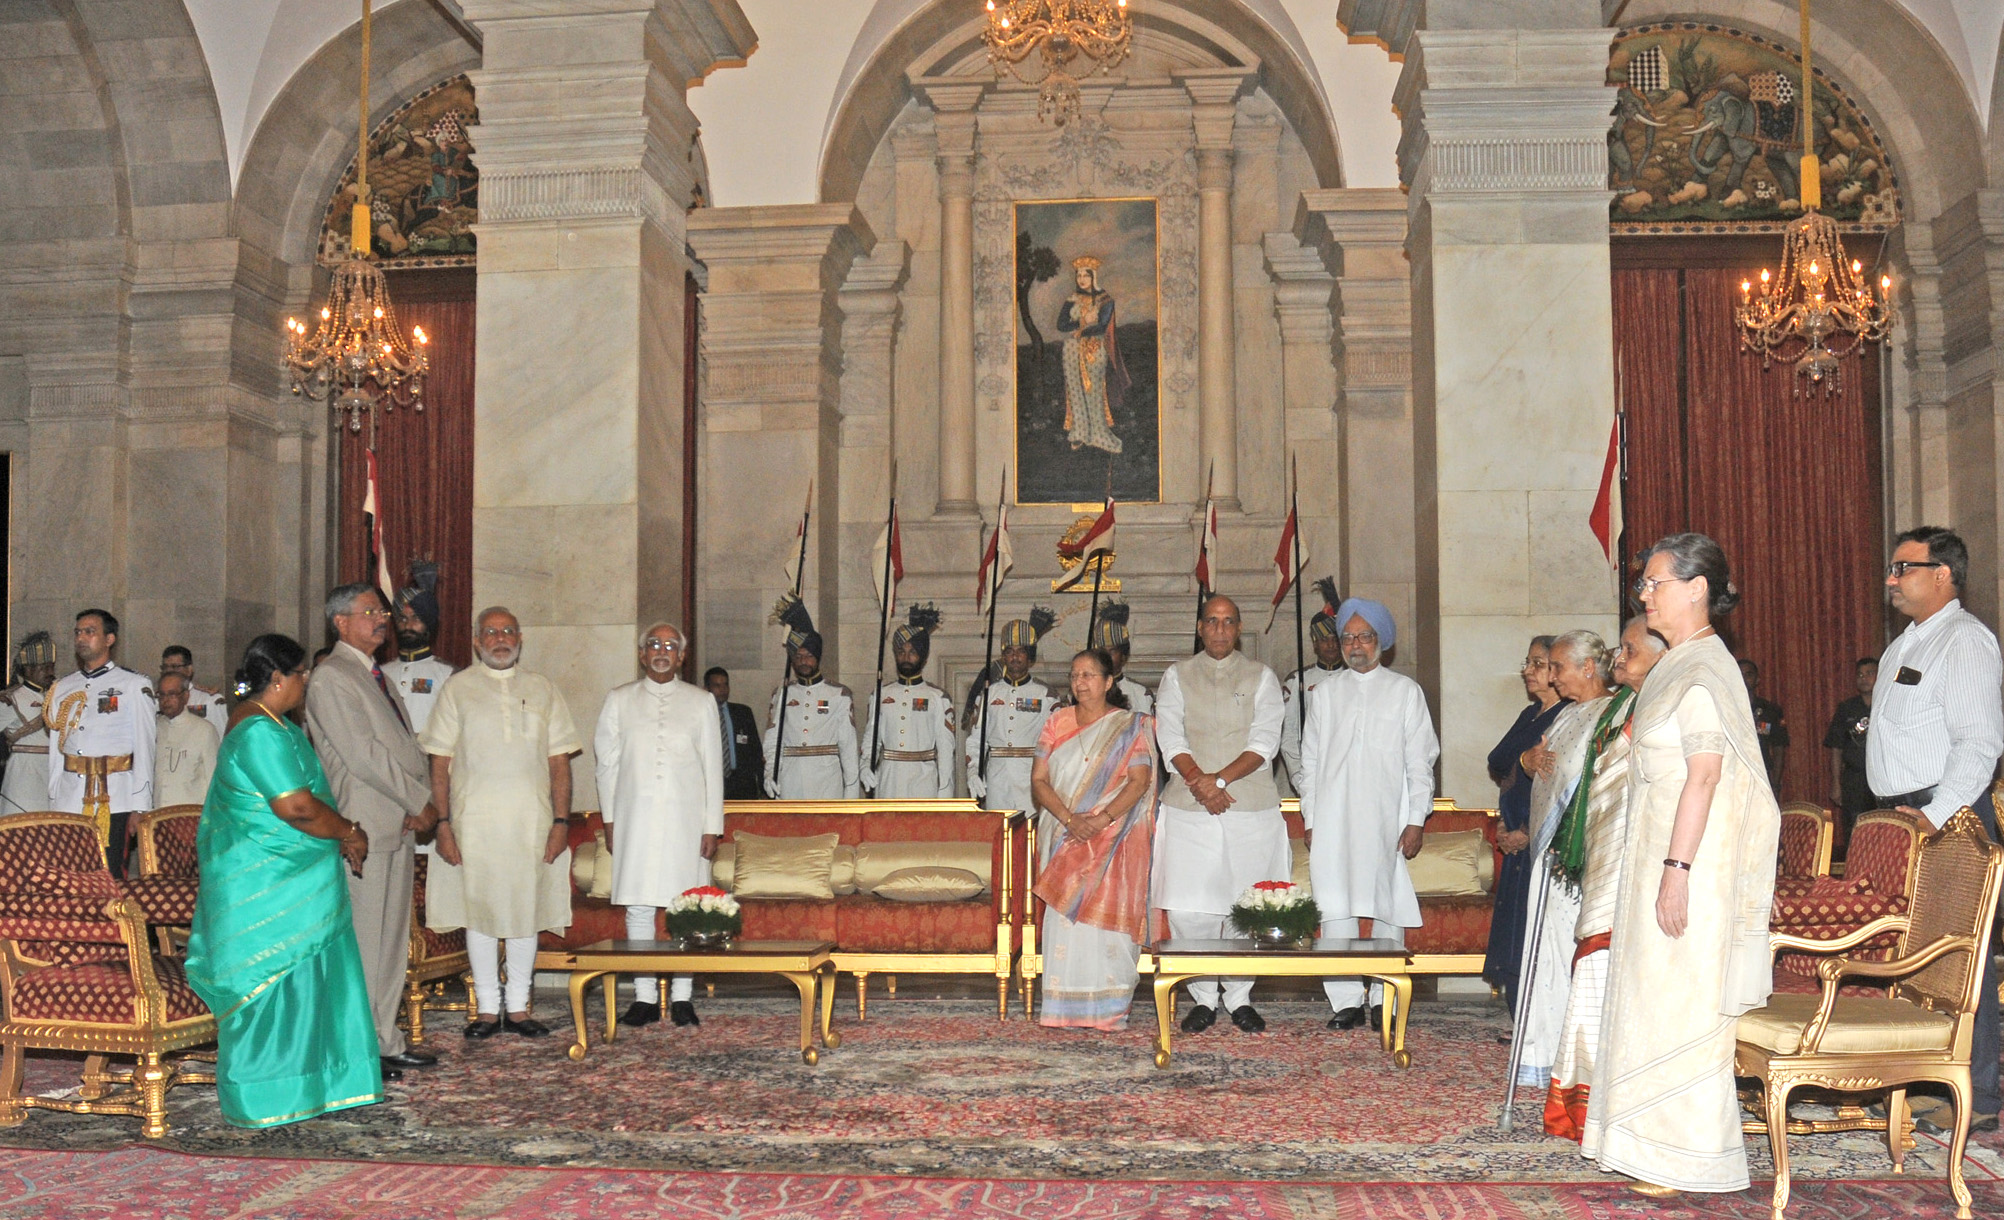 The Prime Minister, Shri Narendra Modi at the 'At Home' function, organised on the occasion of 69th Independence Day, at Rashtrapati Bhavan, in Delhi on August 15, 2015. The Vice President, Shri Mohd. Hamid Ansari, the Union Home Minister, Shri Rajnath Singh, the Speaker, Lok Sabha, Smt. Sumitra Mahajan and other dignitaries are also seen.